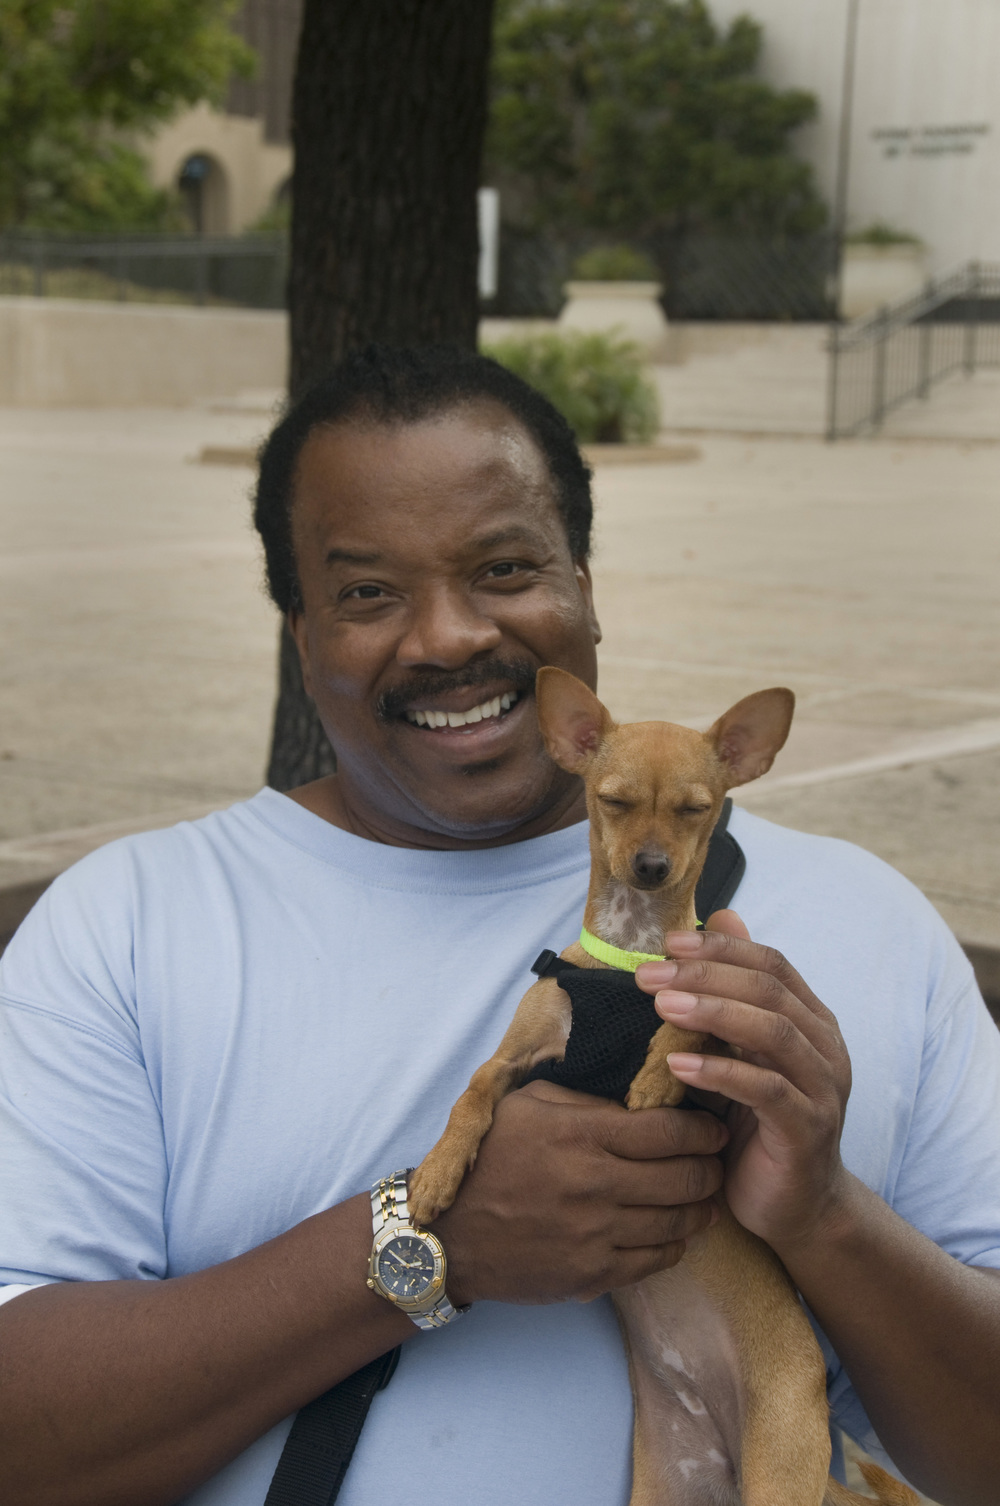 man with Chihuahua